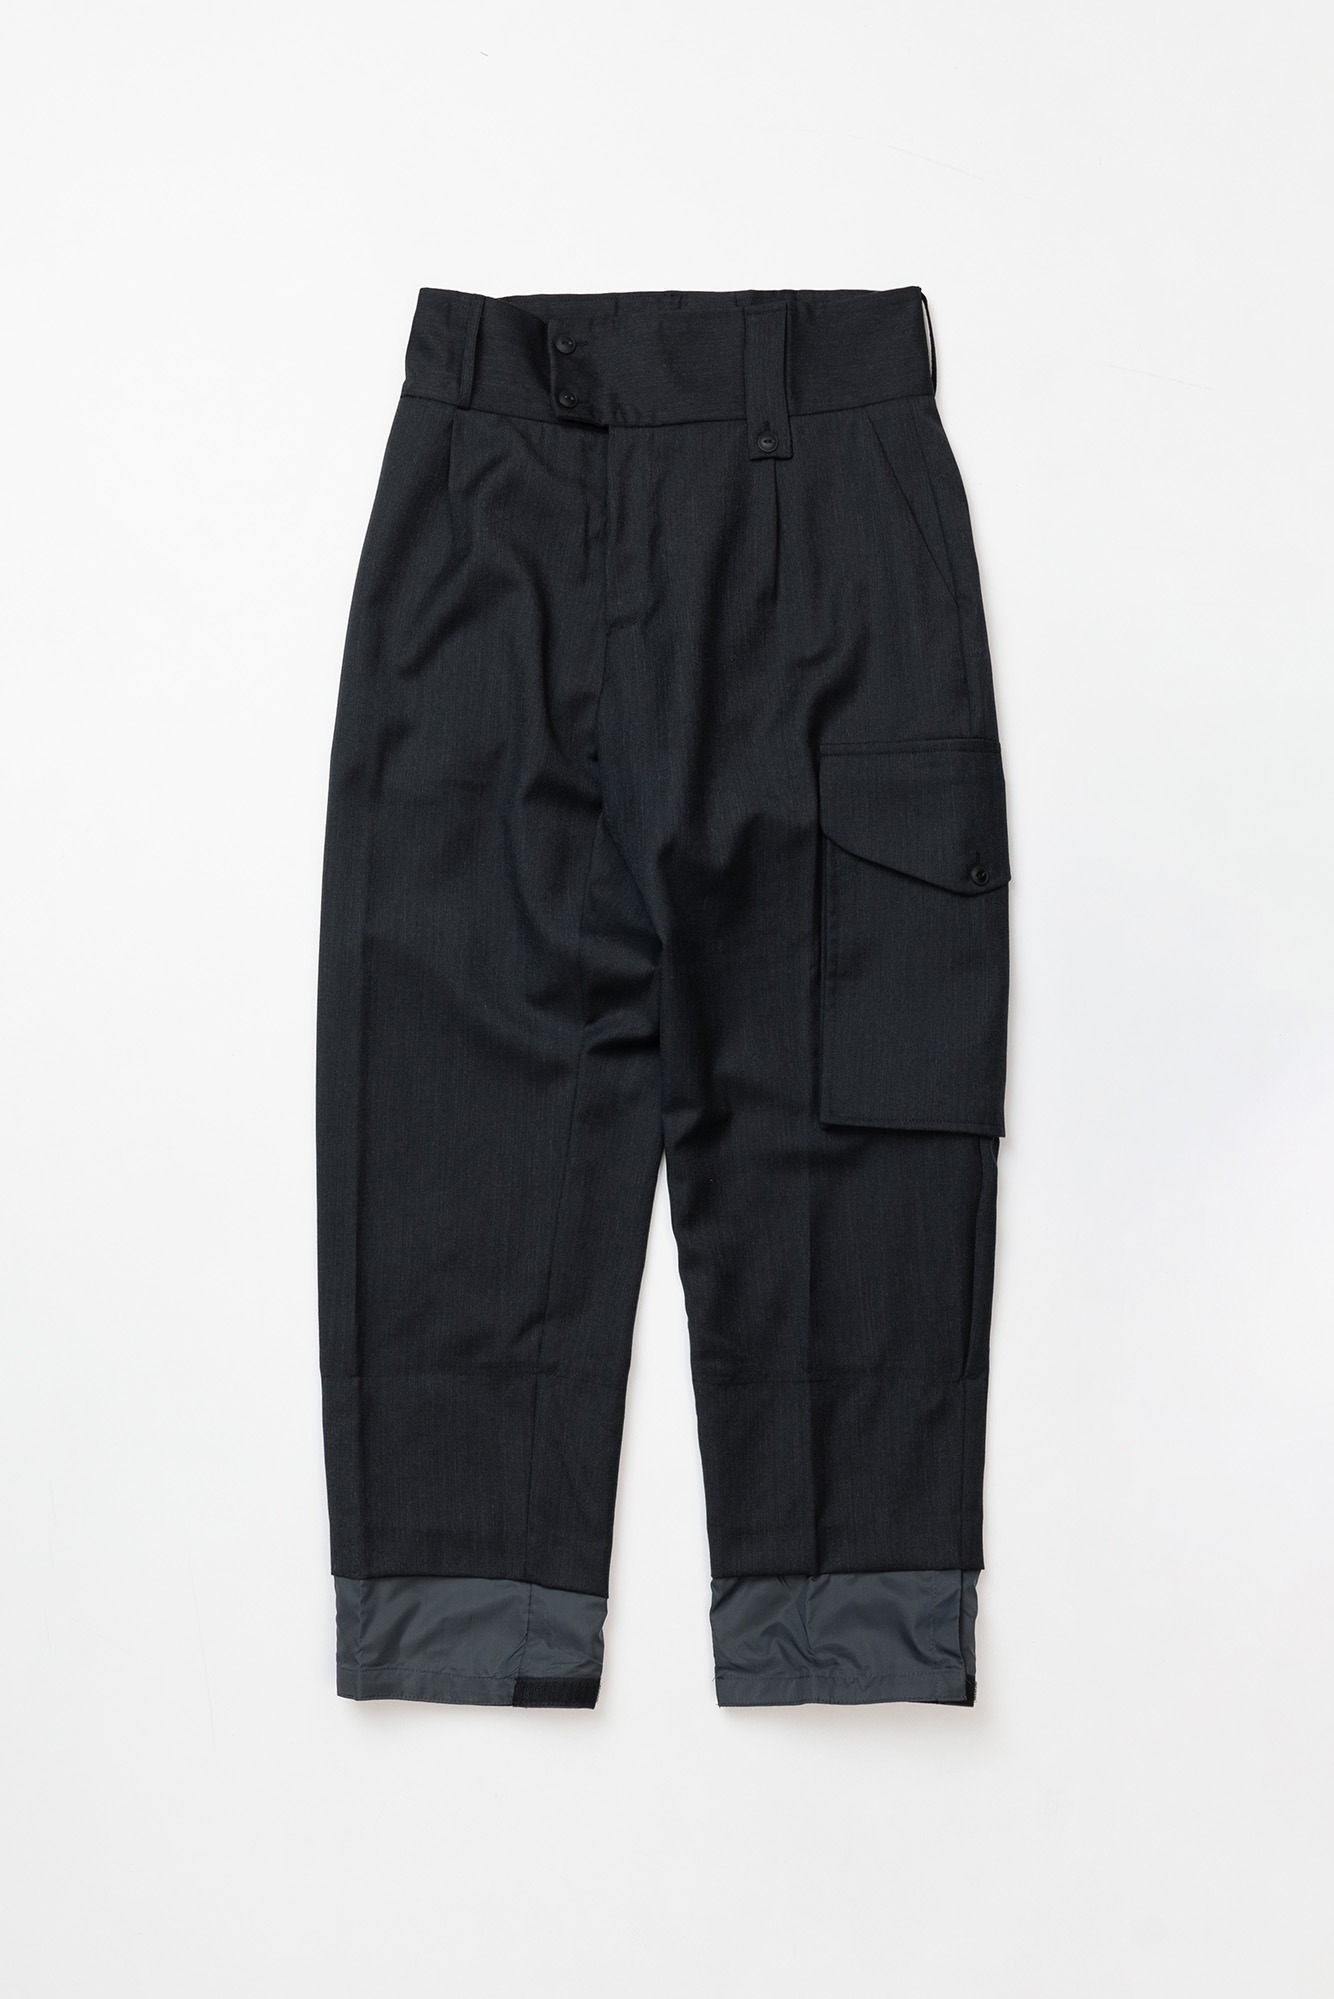 "CORELATE Nylon bottom trousers ""Antracite"""